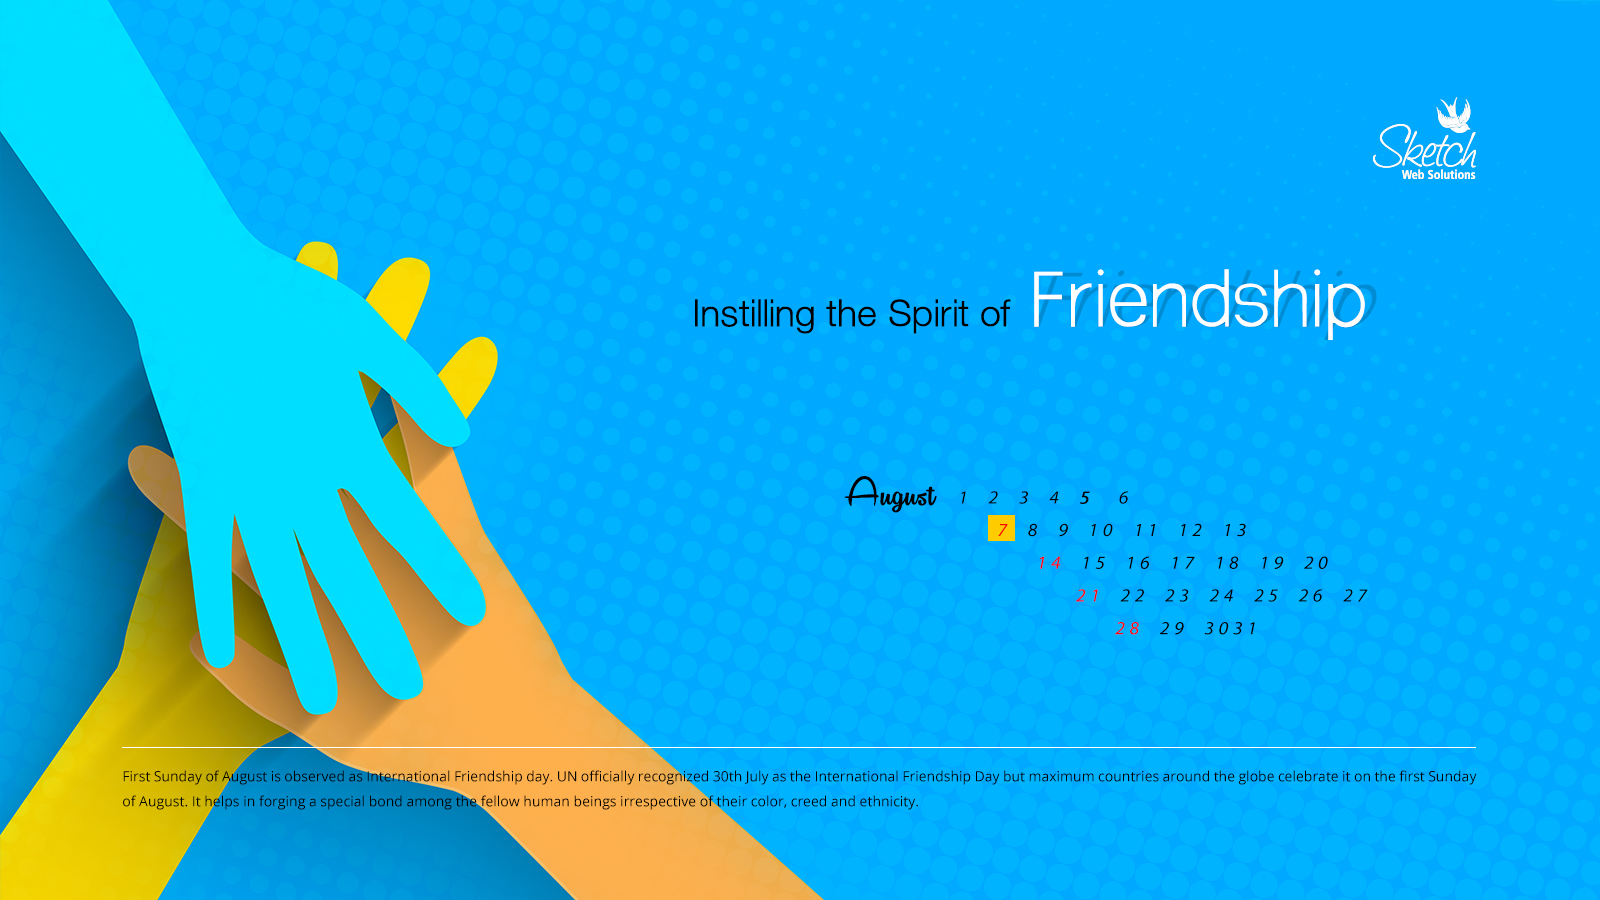 Instilling the Spirit of Friendship